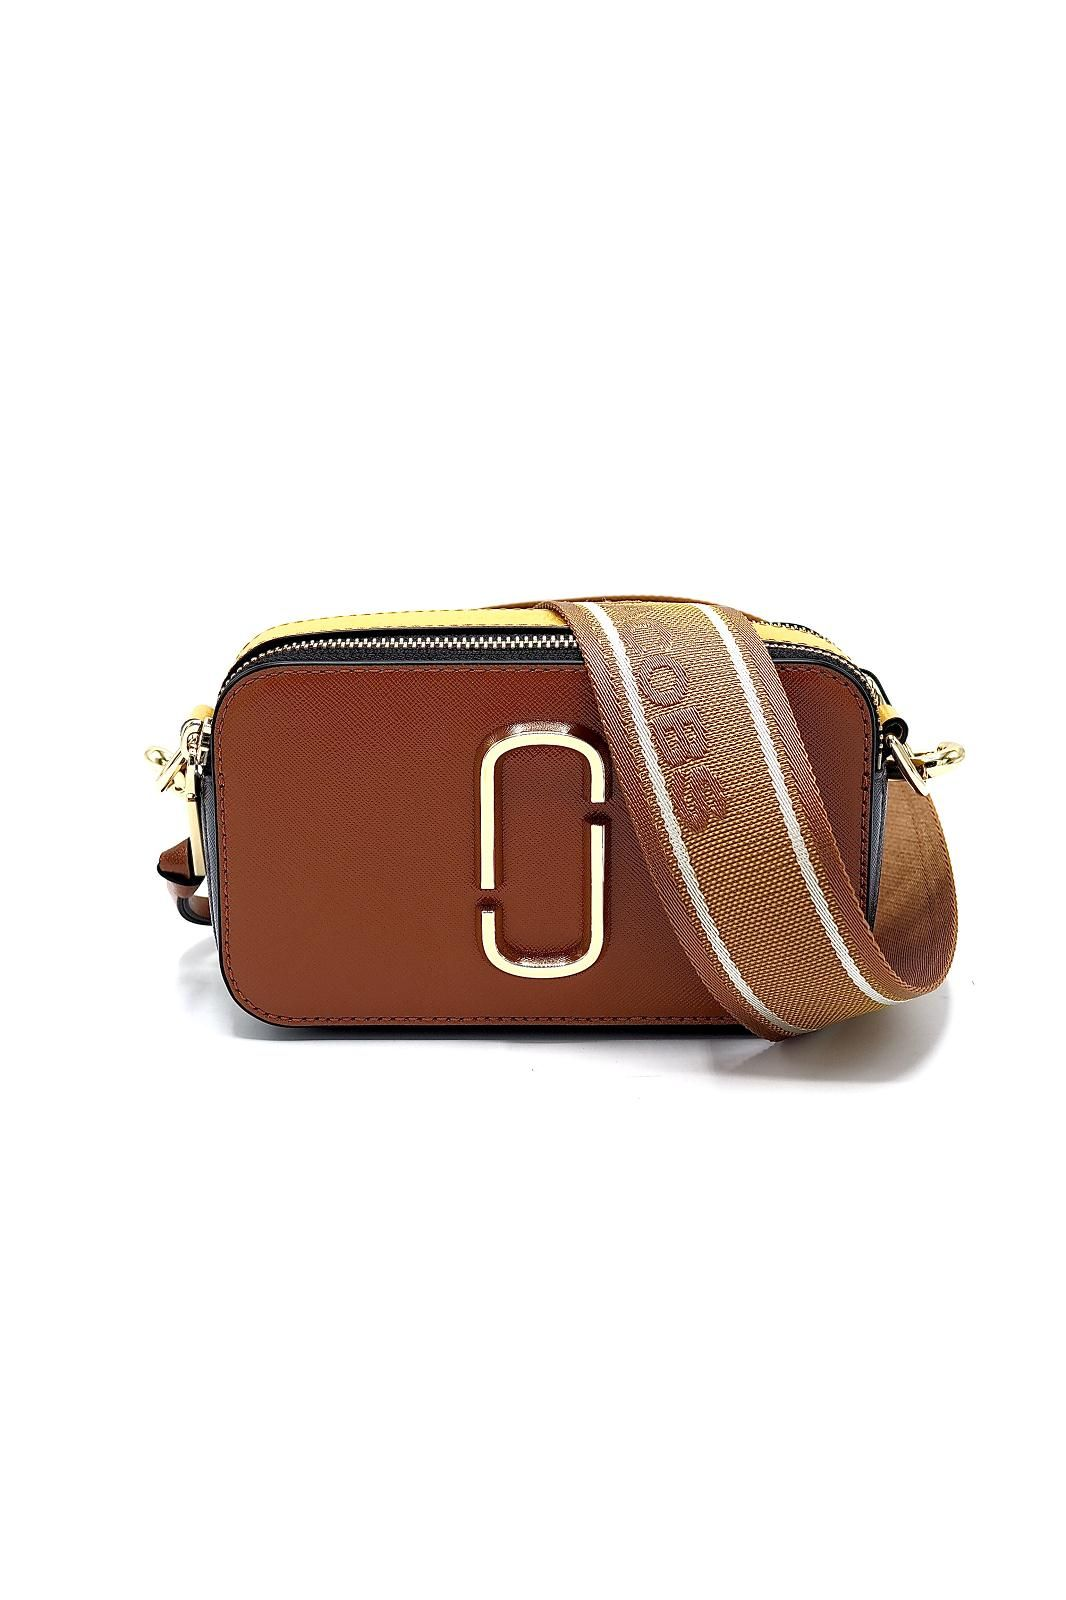 Marc Jacobs sac ocre femmes (MJACOBS-Snapshot SaddleBrown - SNAPSHOT 21 12007-911 rouille/) - Marine | Much more than shoes